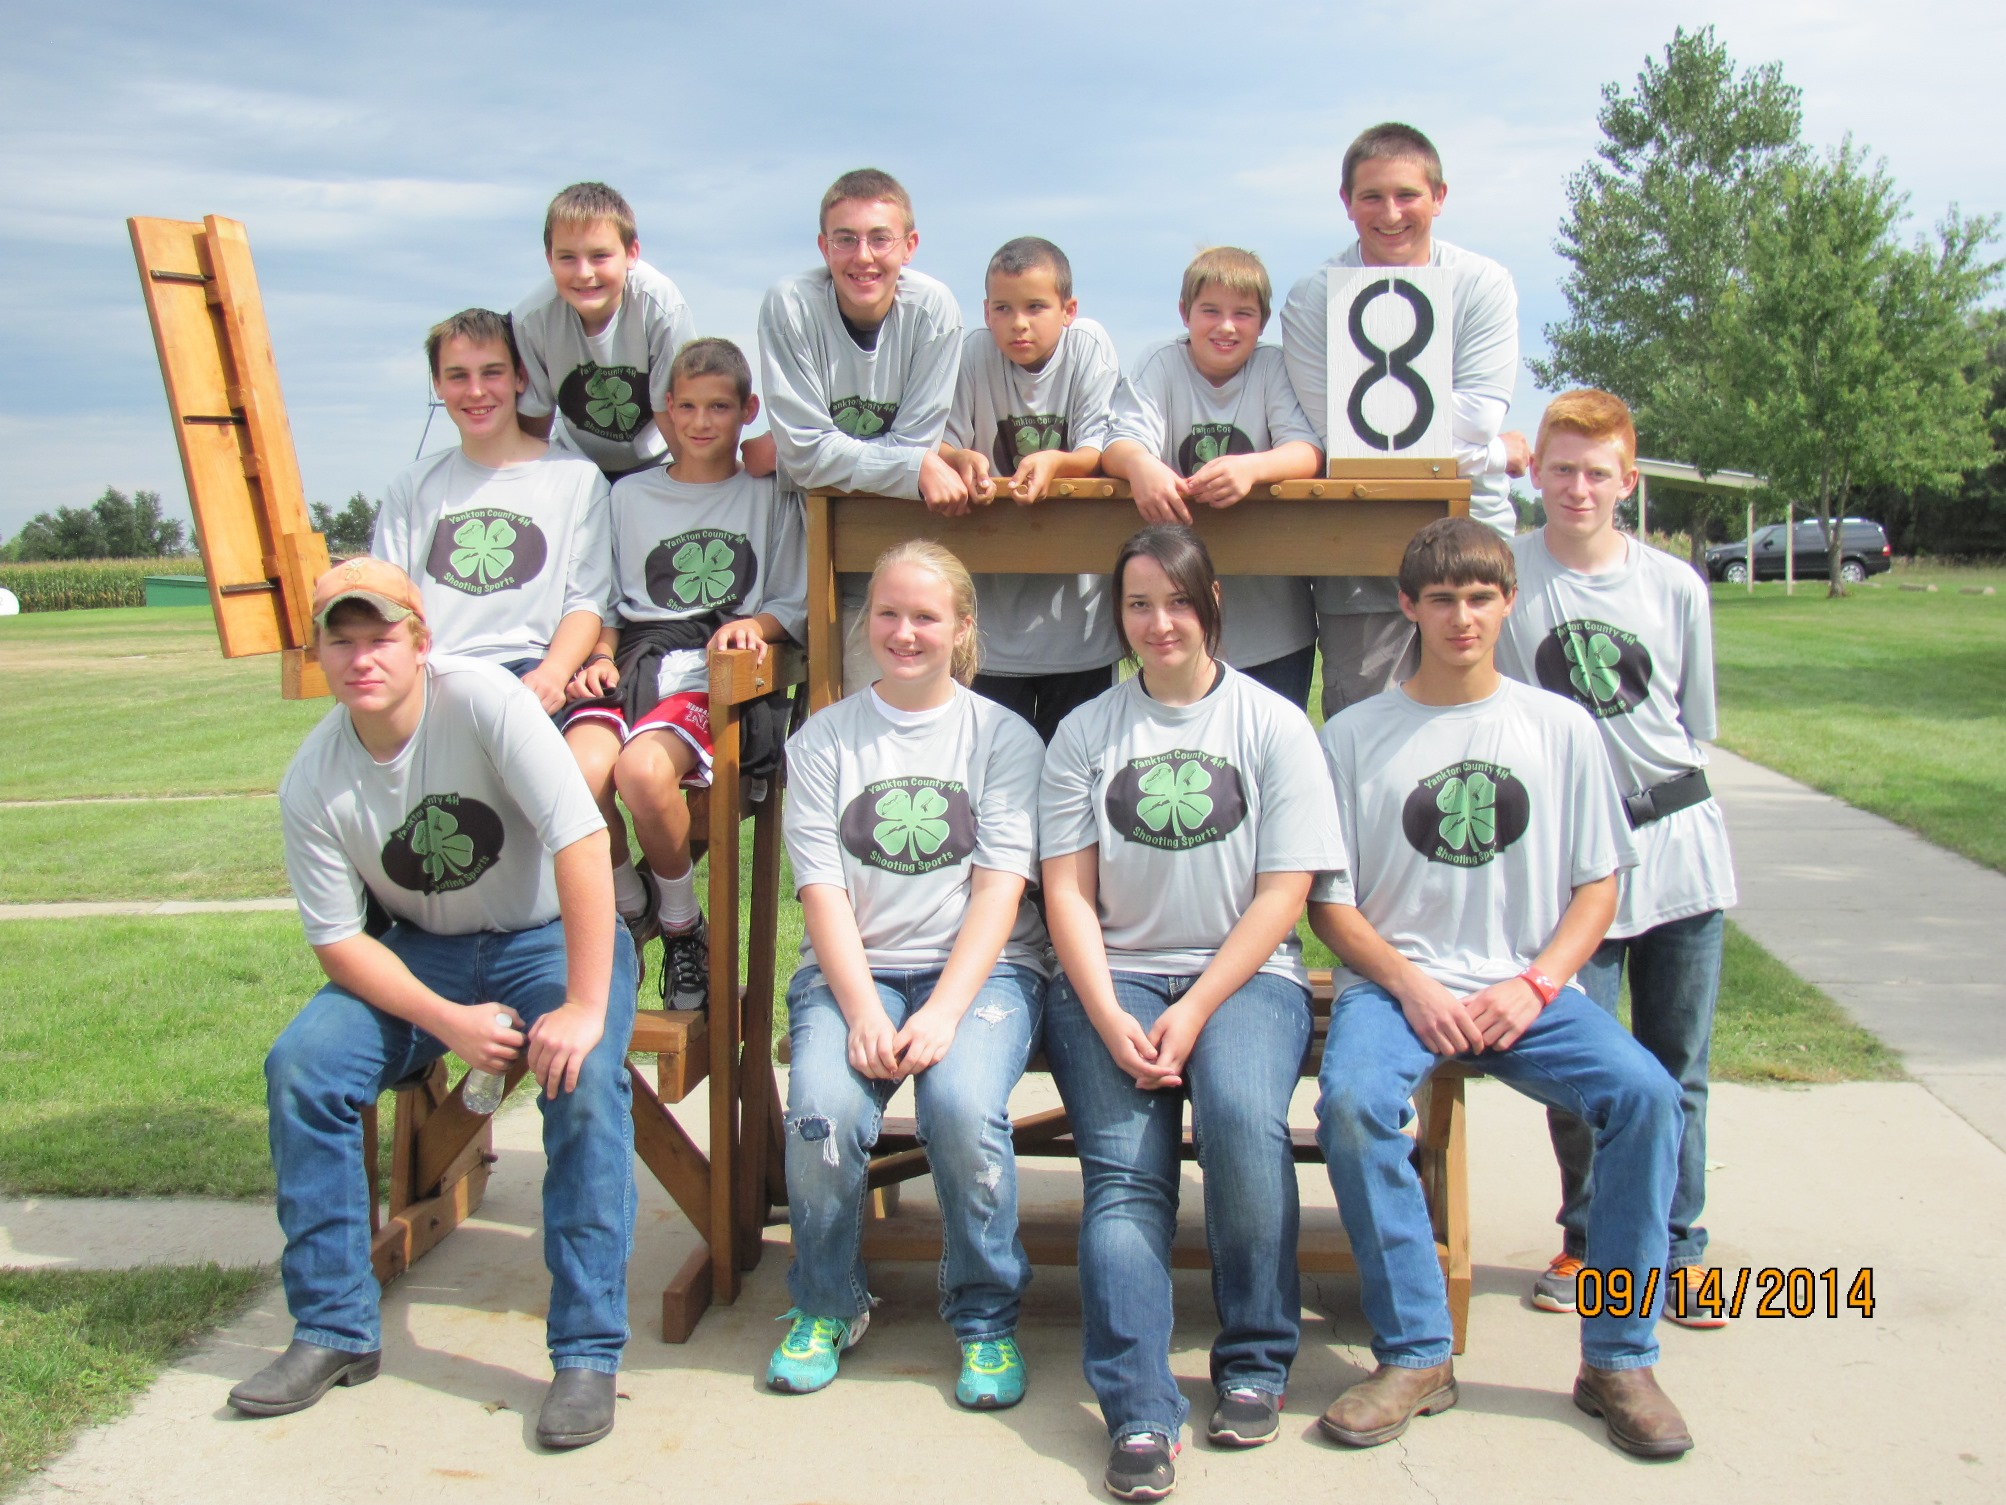 2014 Yankton 4H Shooting Sports Team